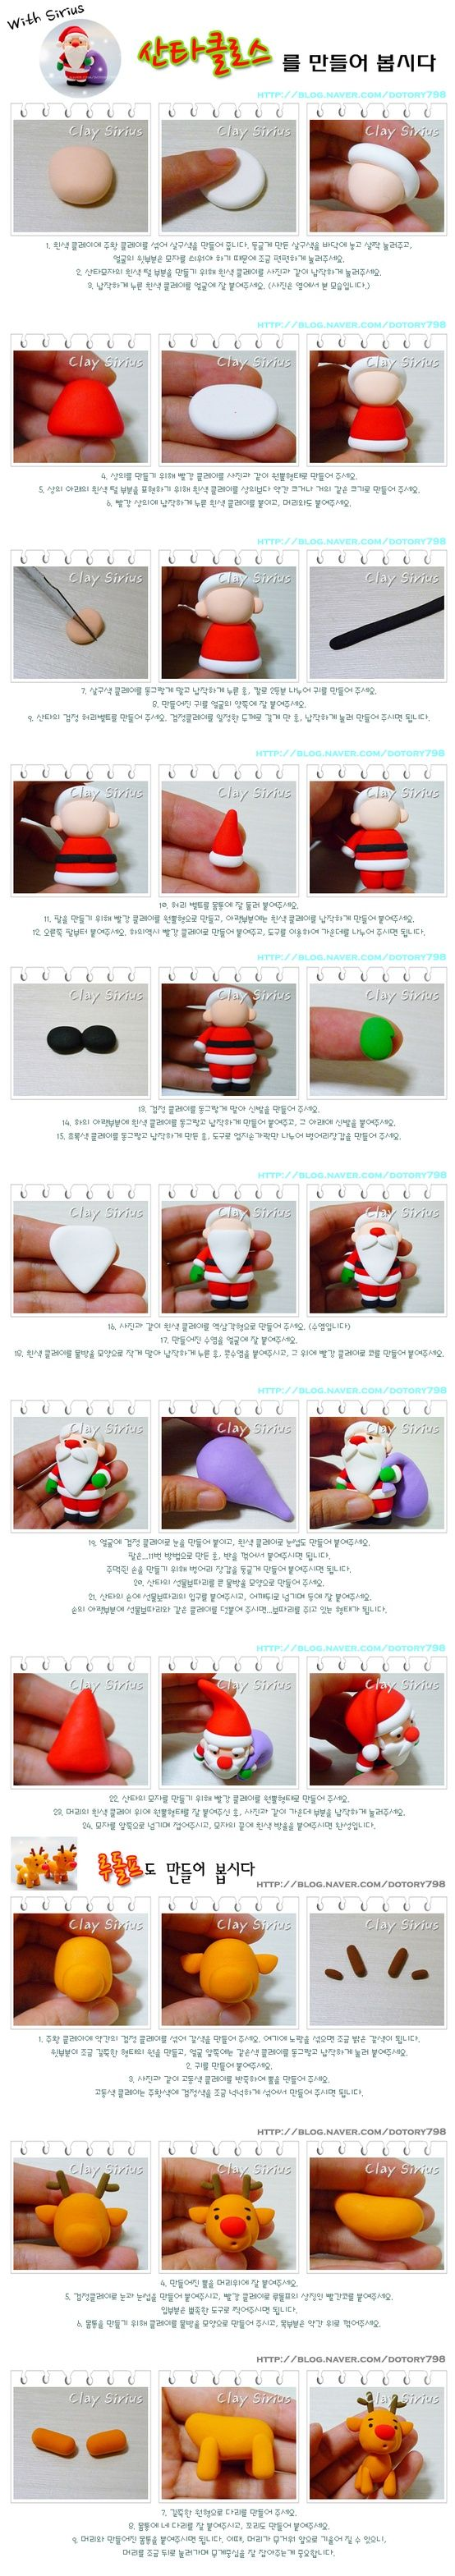 Santa Claus and Rudolph fondant - For all your cake decorating supplies, please visit craftcompany.co.uk